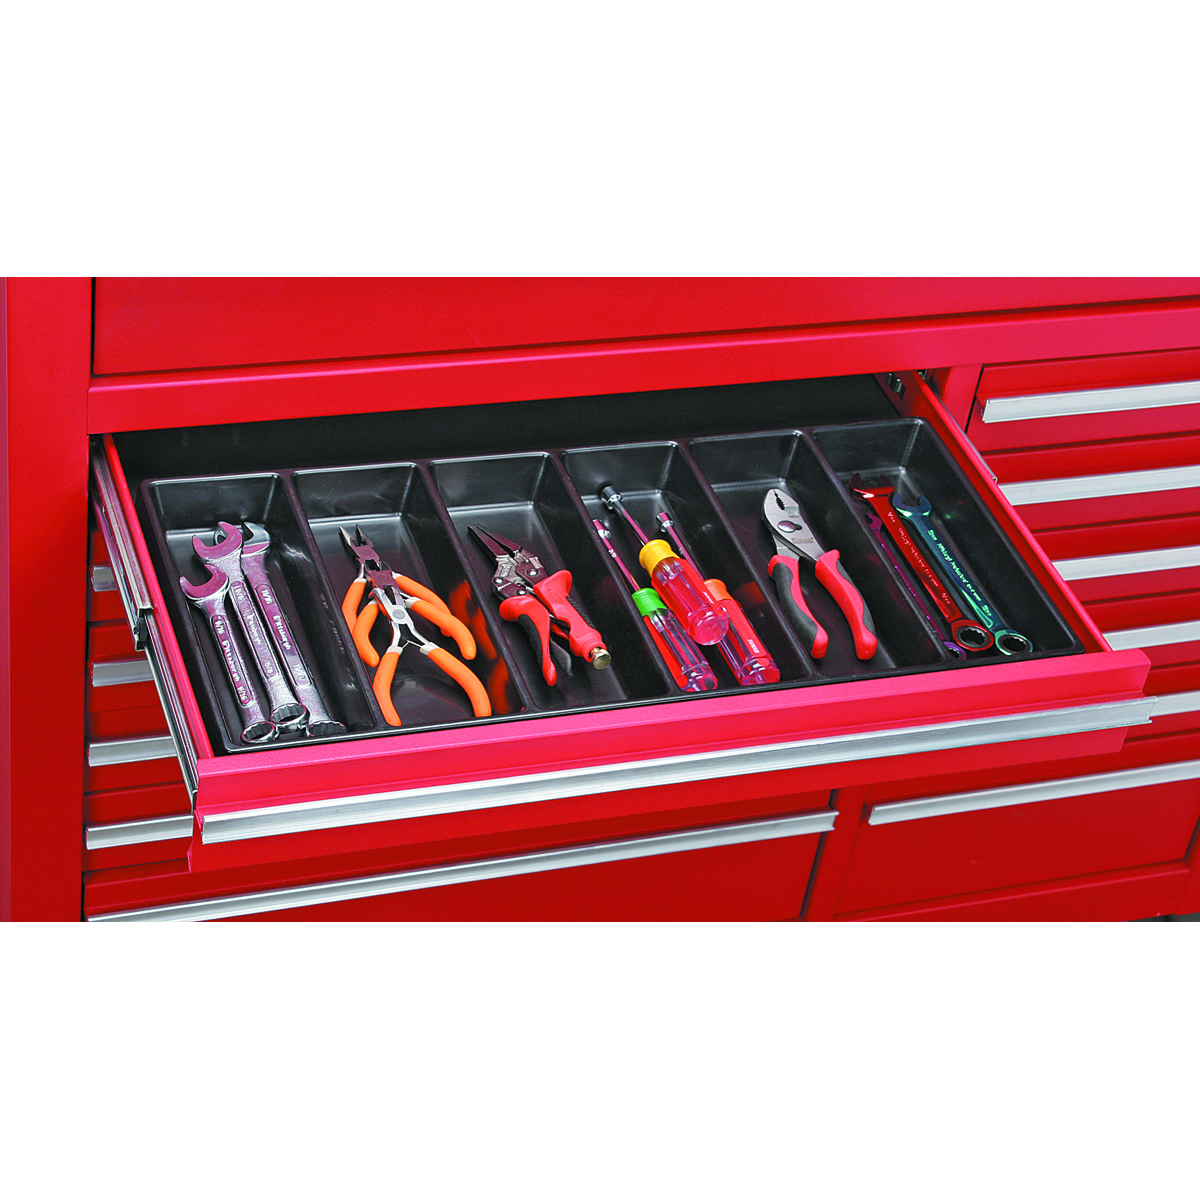 6 Compartment Drawer Organizer